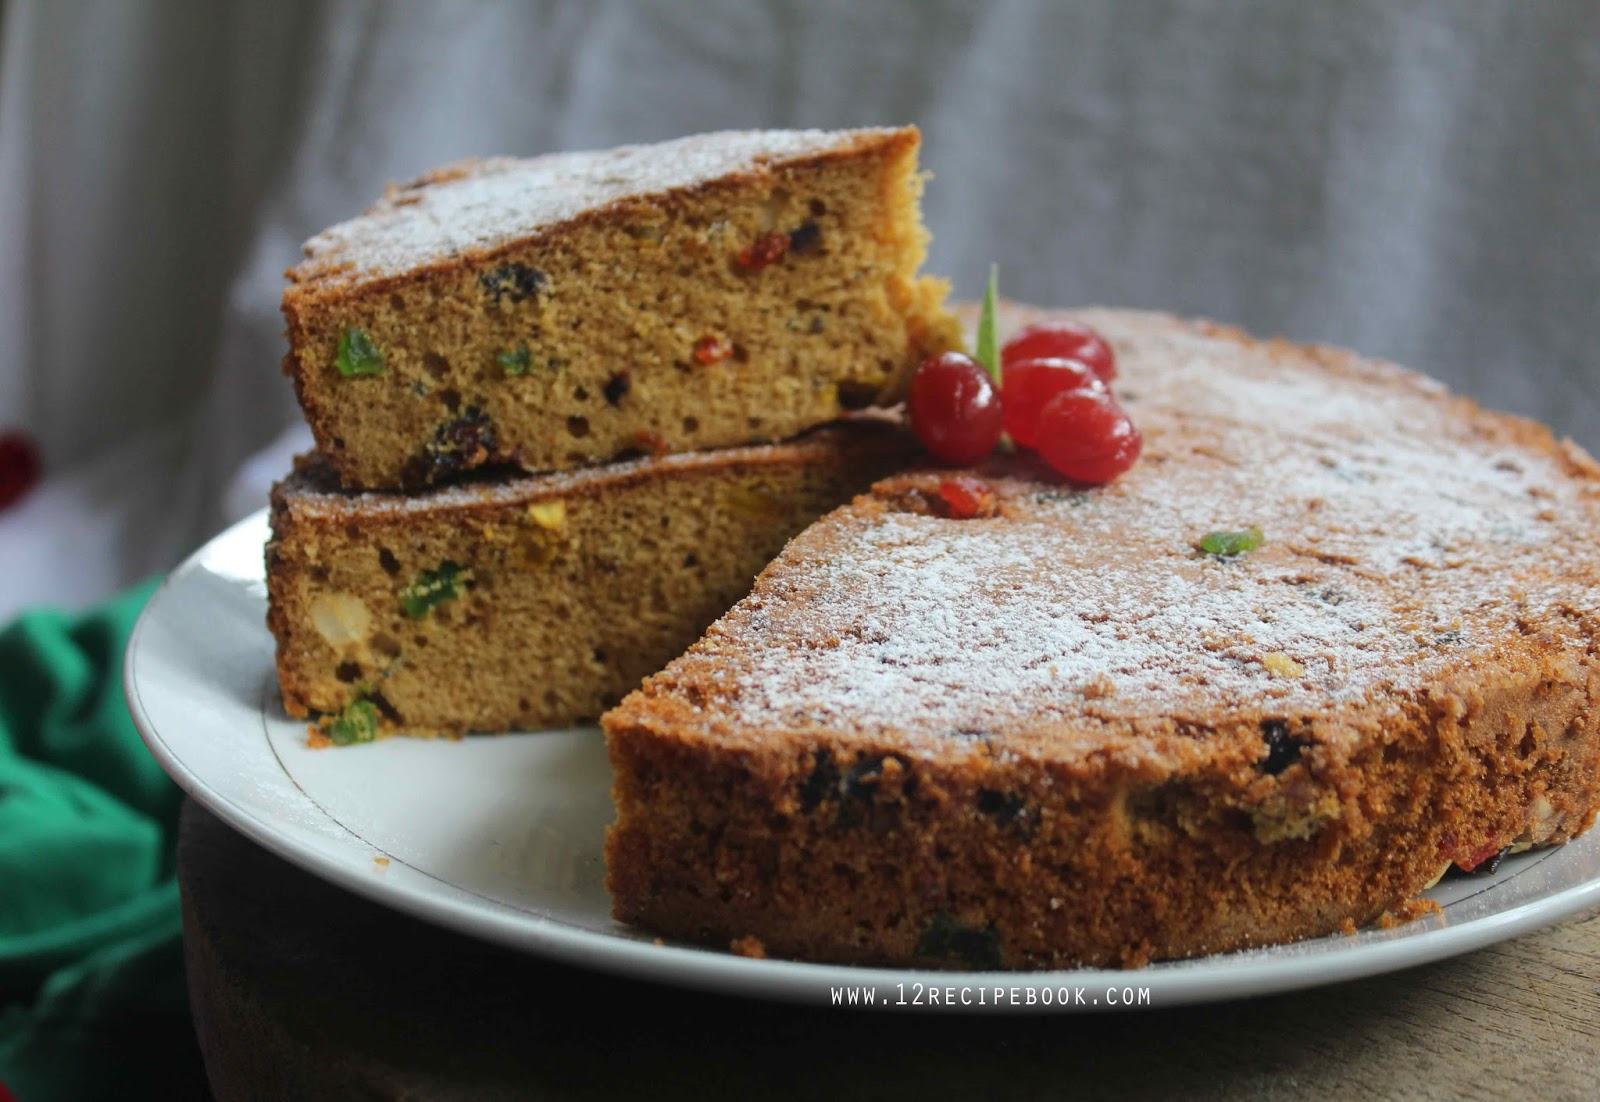 Simple Cake Recipes In Pressure Cooker: Fruit Cake On Pressure Cooker